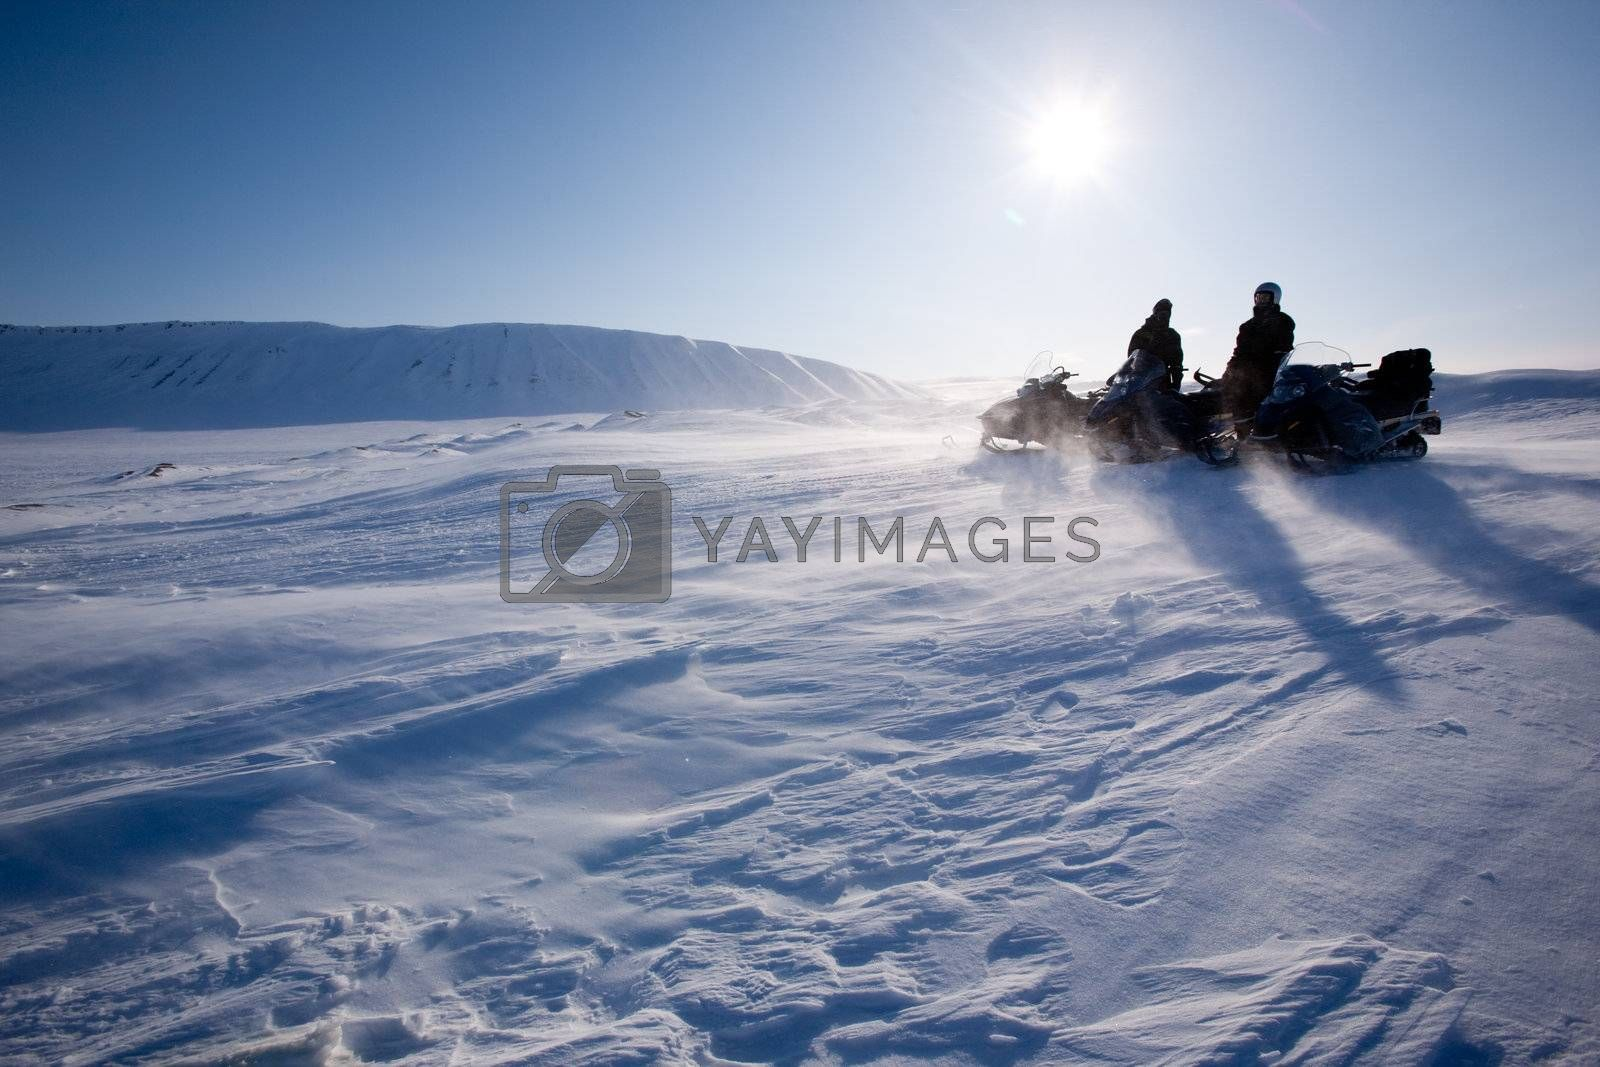 Travelling in a very cold winter landscape with blowing snow